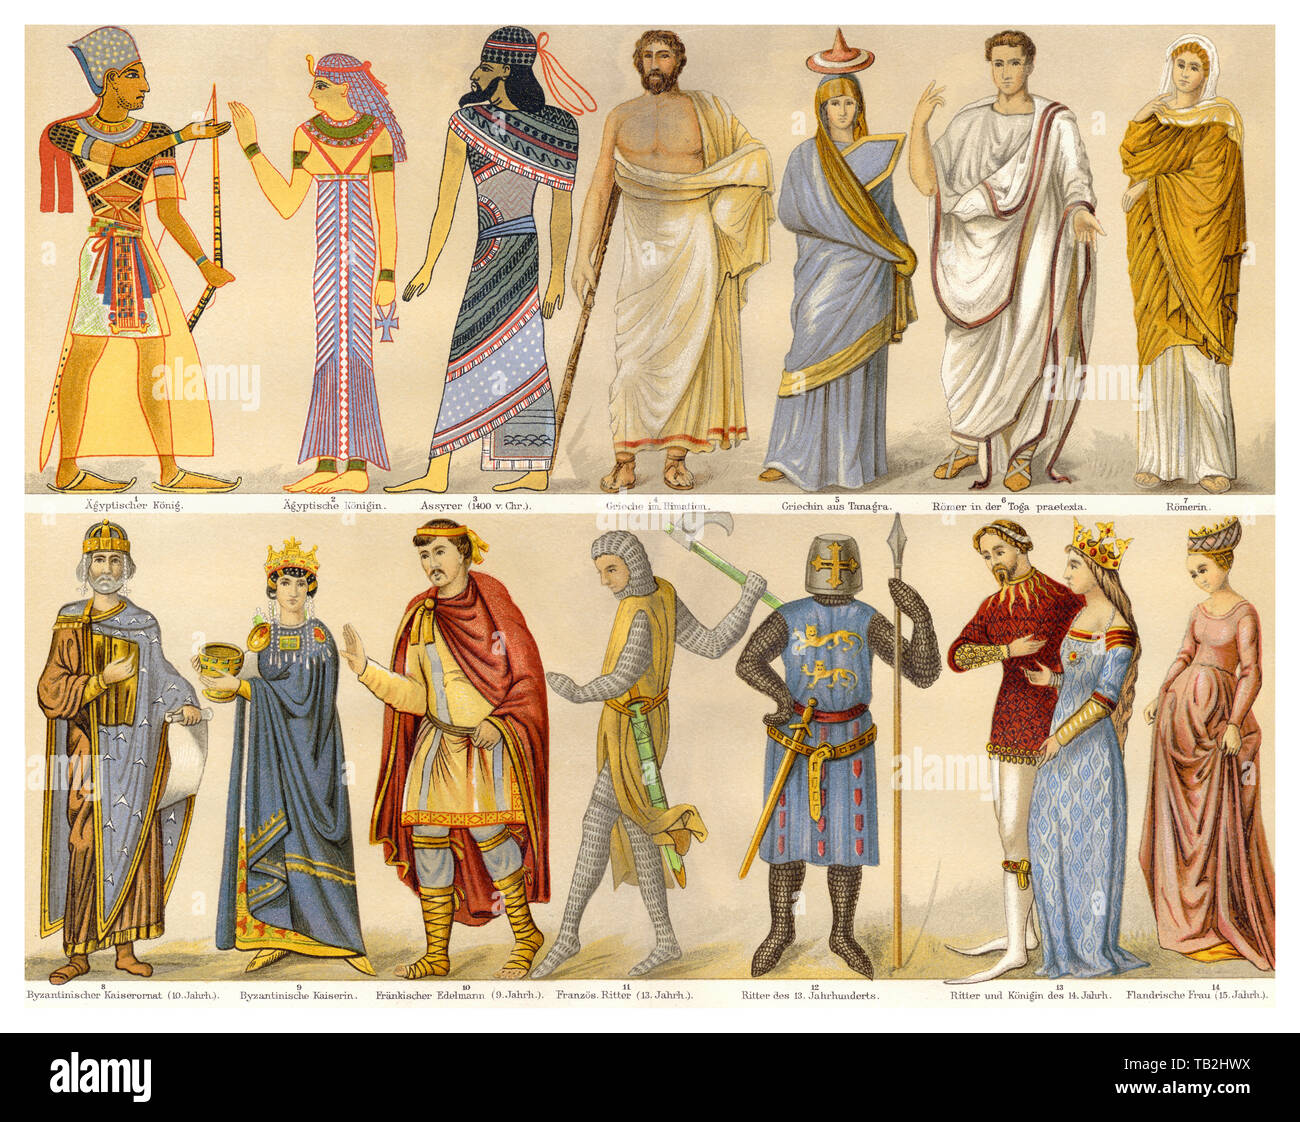 Middle Ages Clothing Stock Photos & Middle Ages Clothing